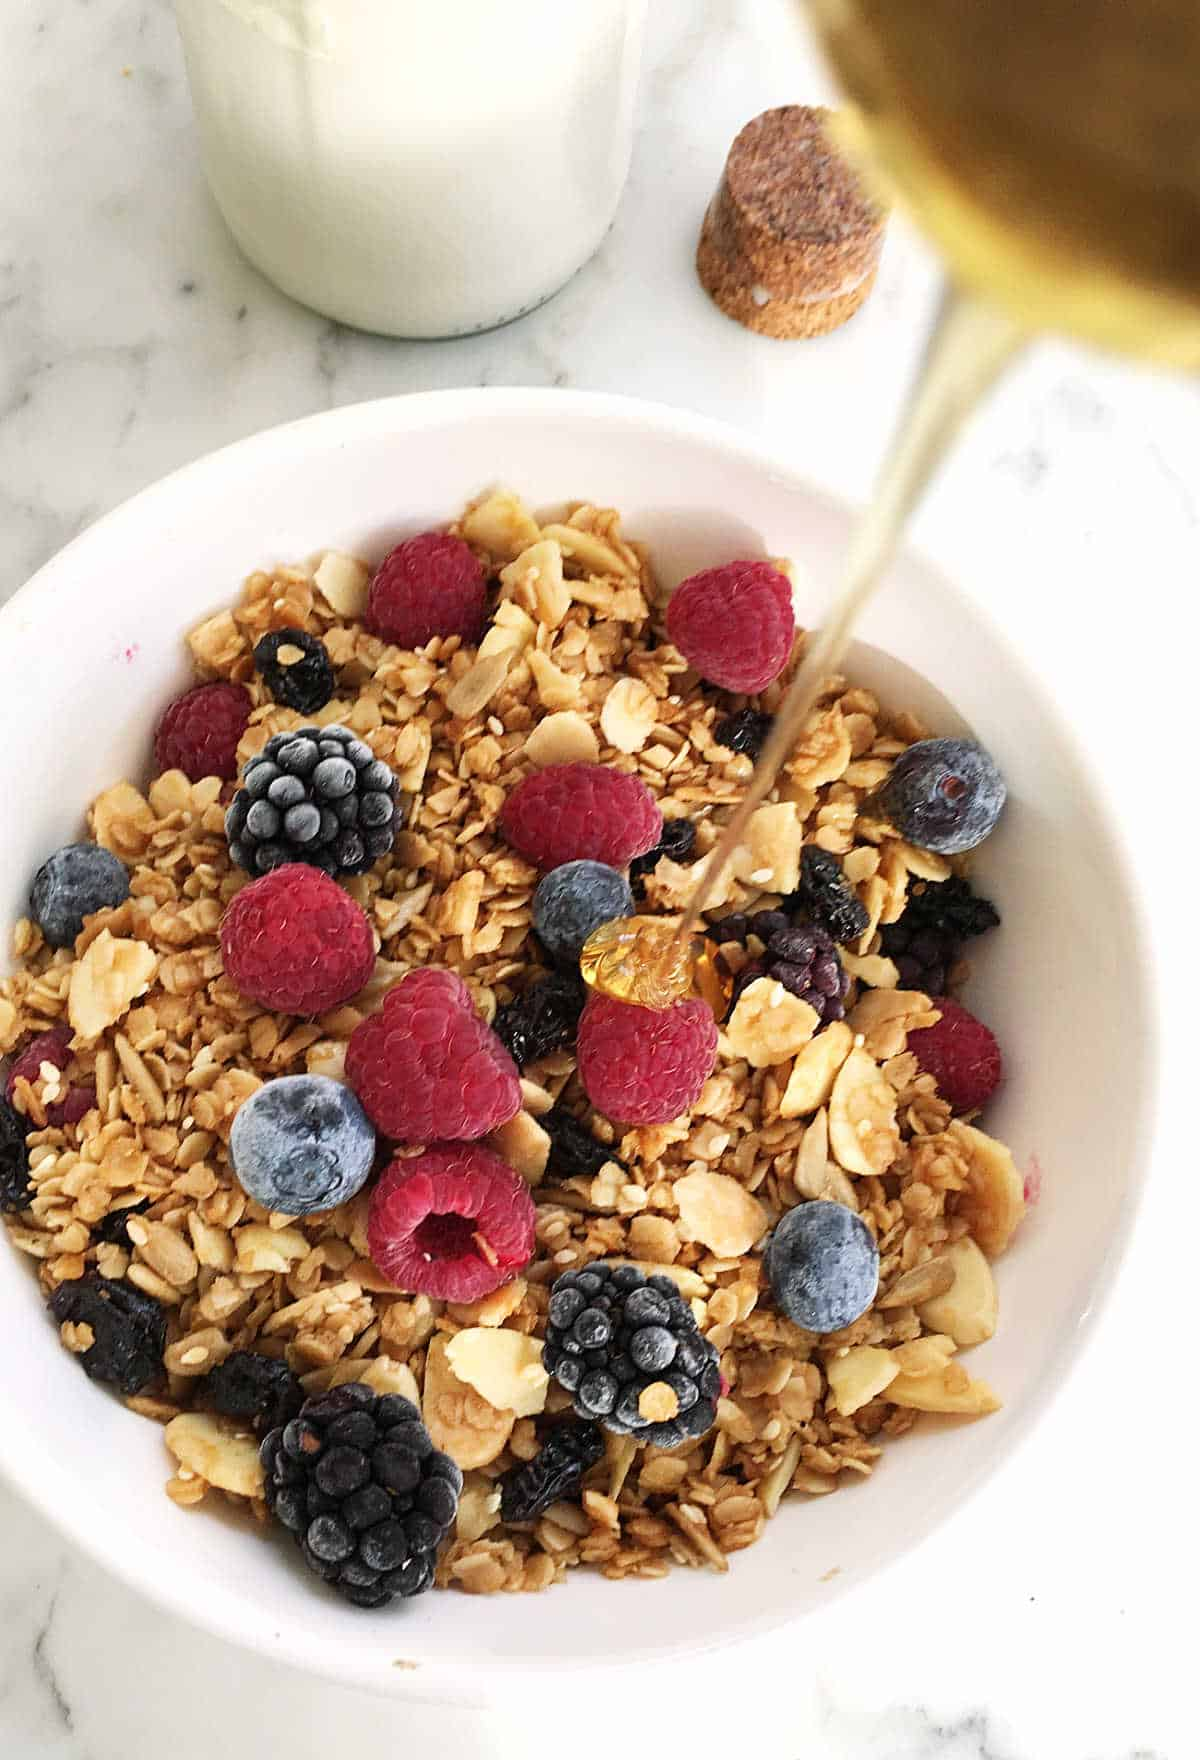 Drizzle of honey pouring onto a white bowl with granola and berries, white surface, milk bottle